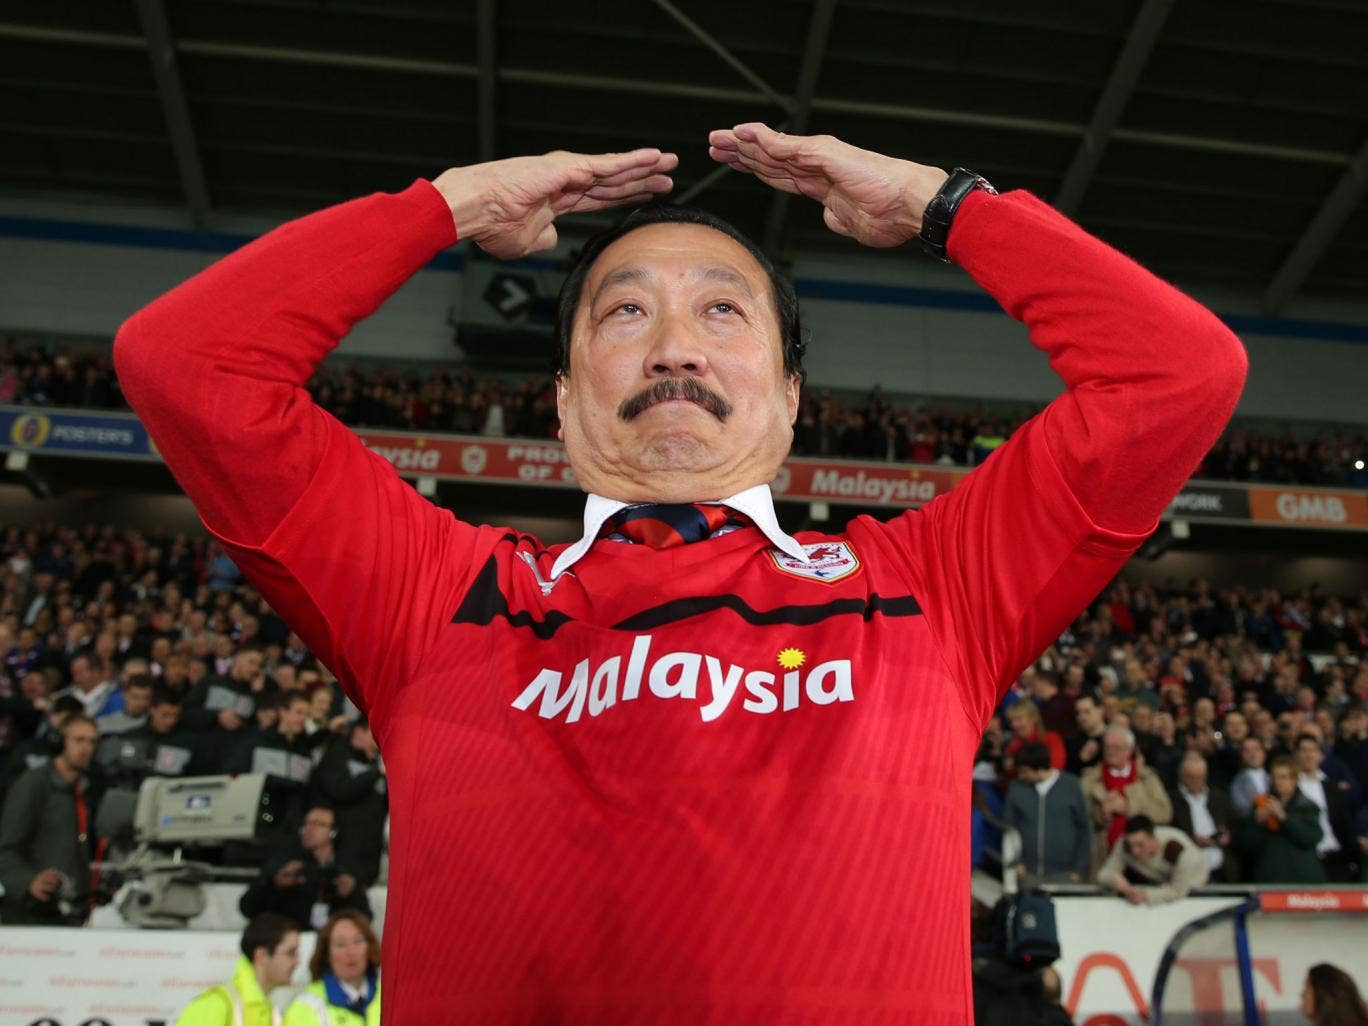 Cardiff supremo Vincent Tan is on the verge of firing his overachieving young manager Malky Mackay